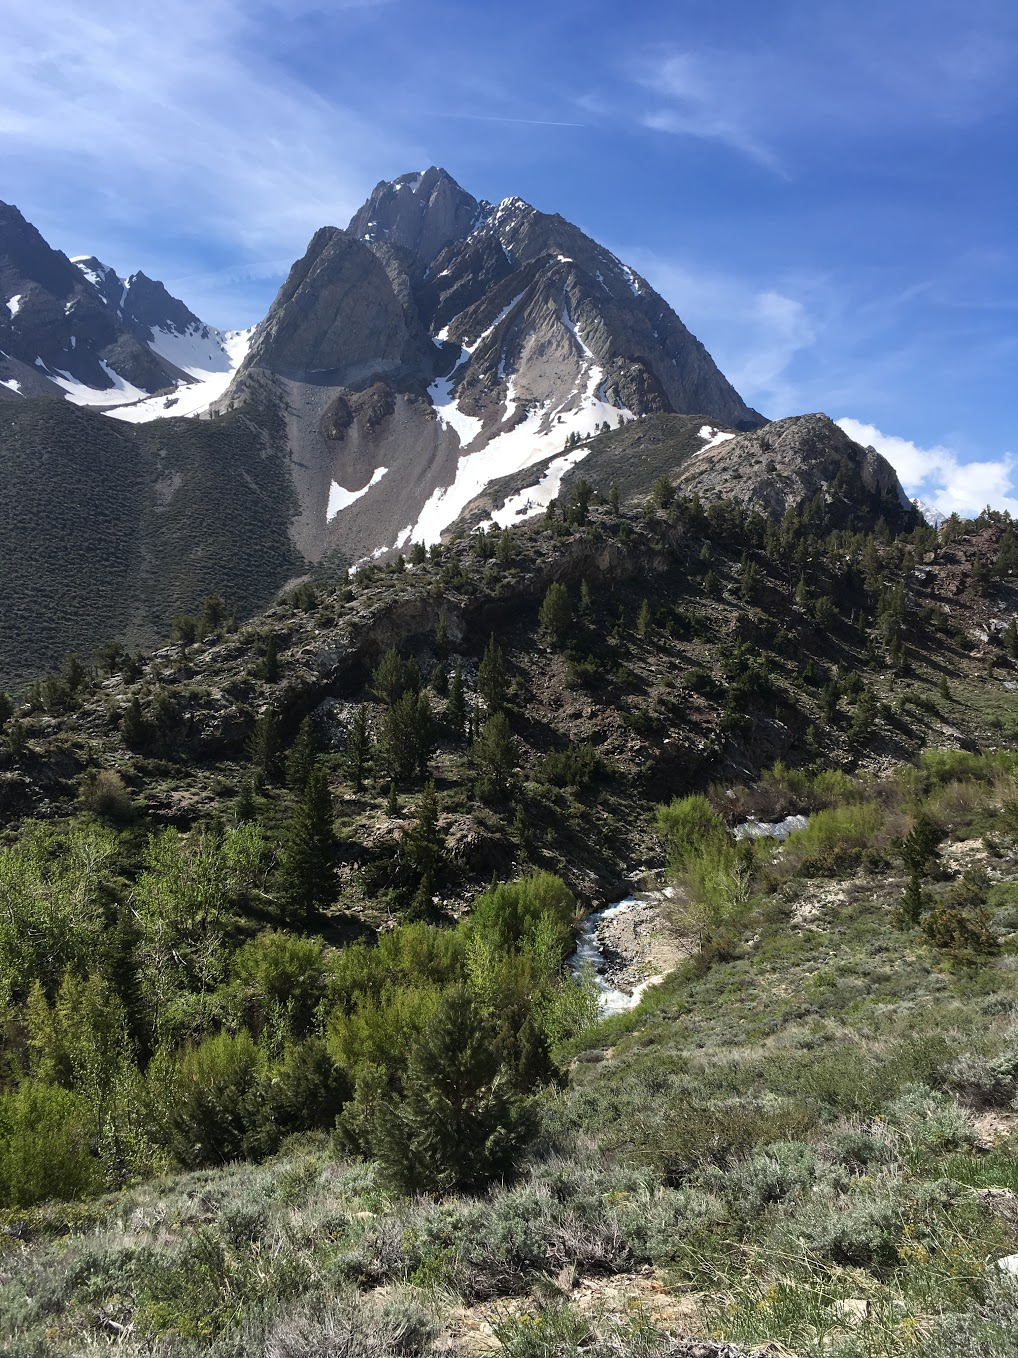 A view from the trail.